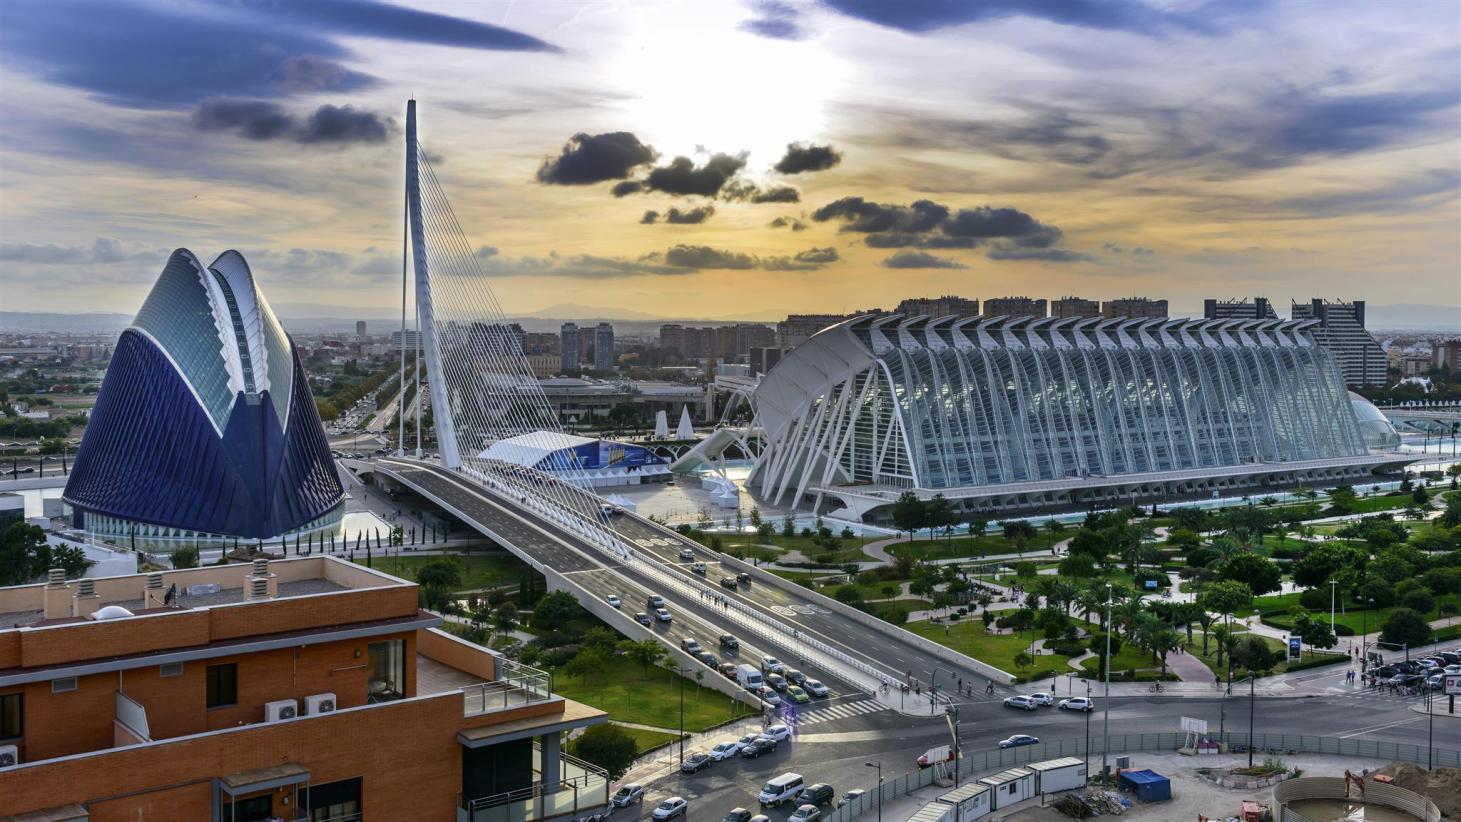 10 Best Valencia Hotels Hd Photos Reviews Of Hotels In Valencia